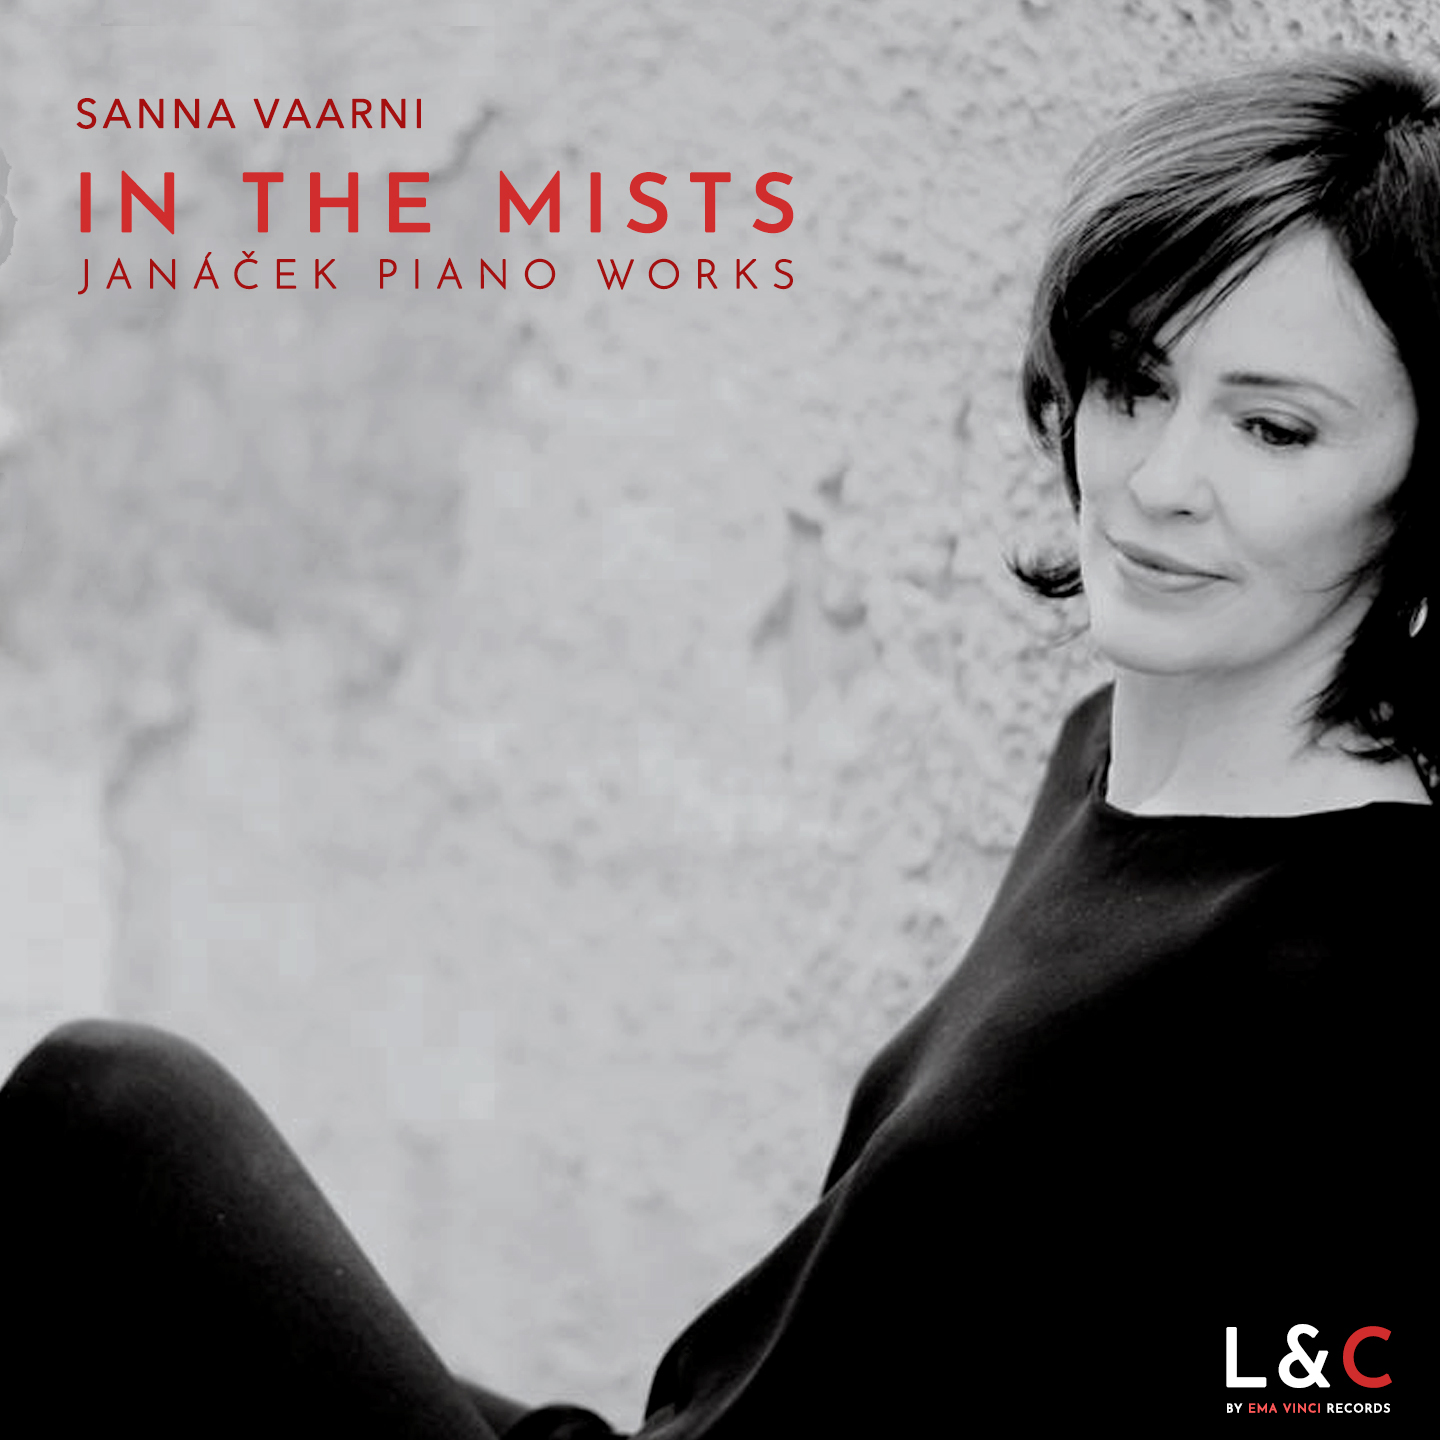 Sanna Vaarni - In the Mists